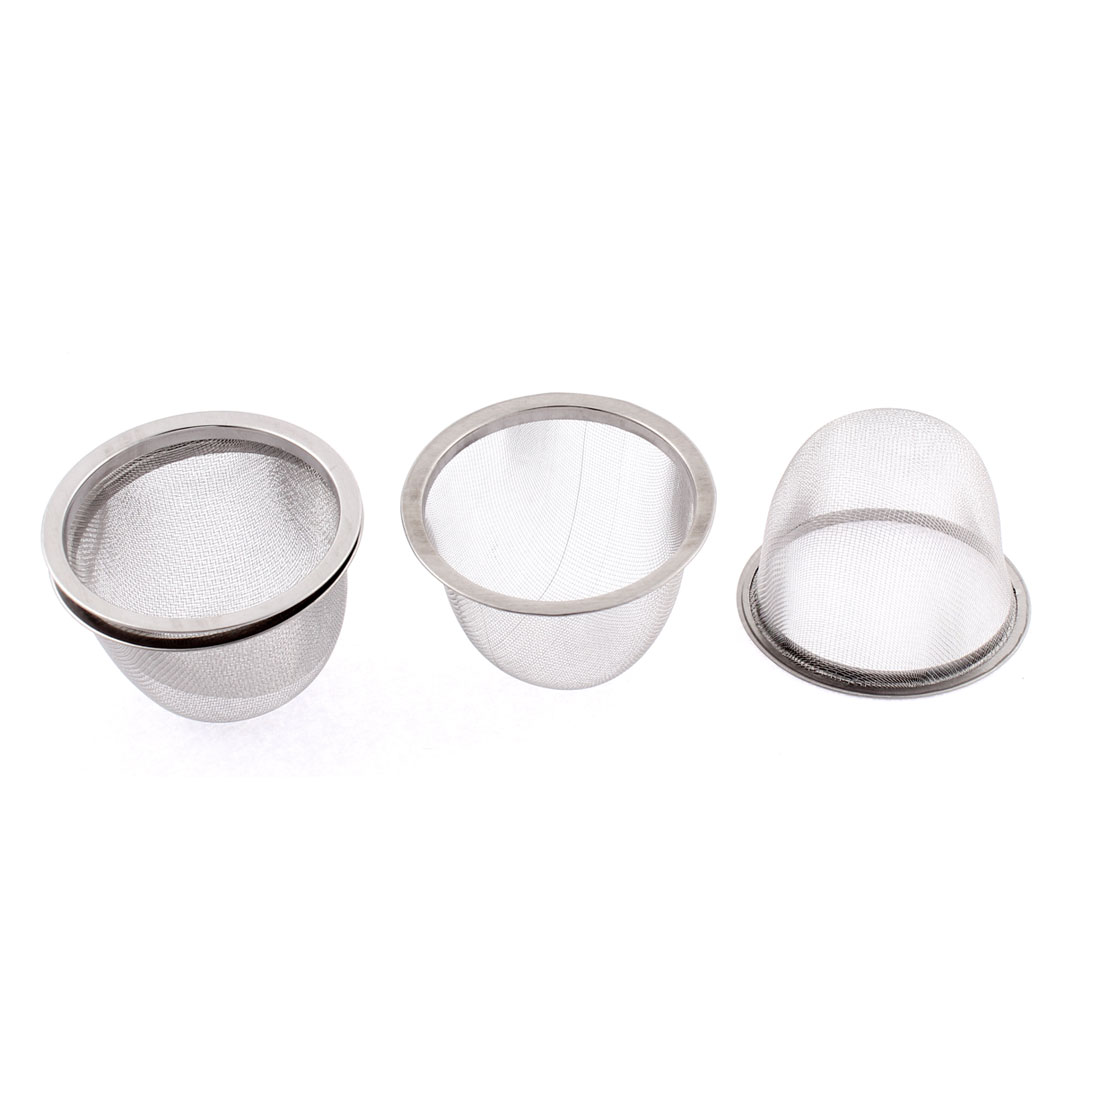 70mm Dia Stainless Steel Wire Mesh Tea Infuser Strainer Filter 4 Pcs